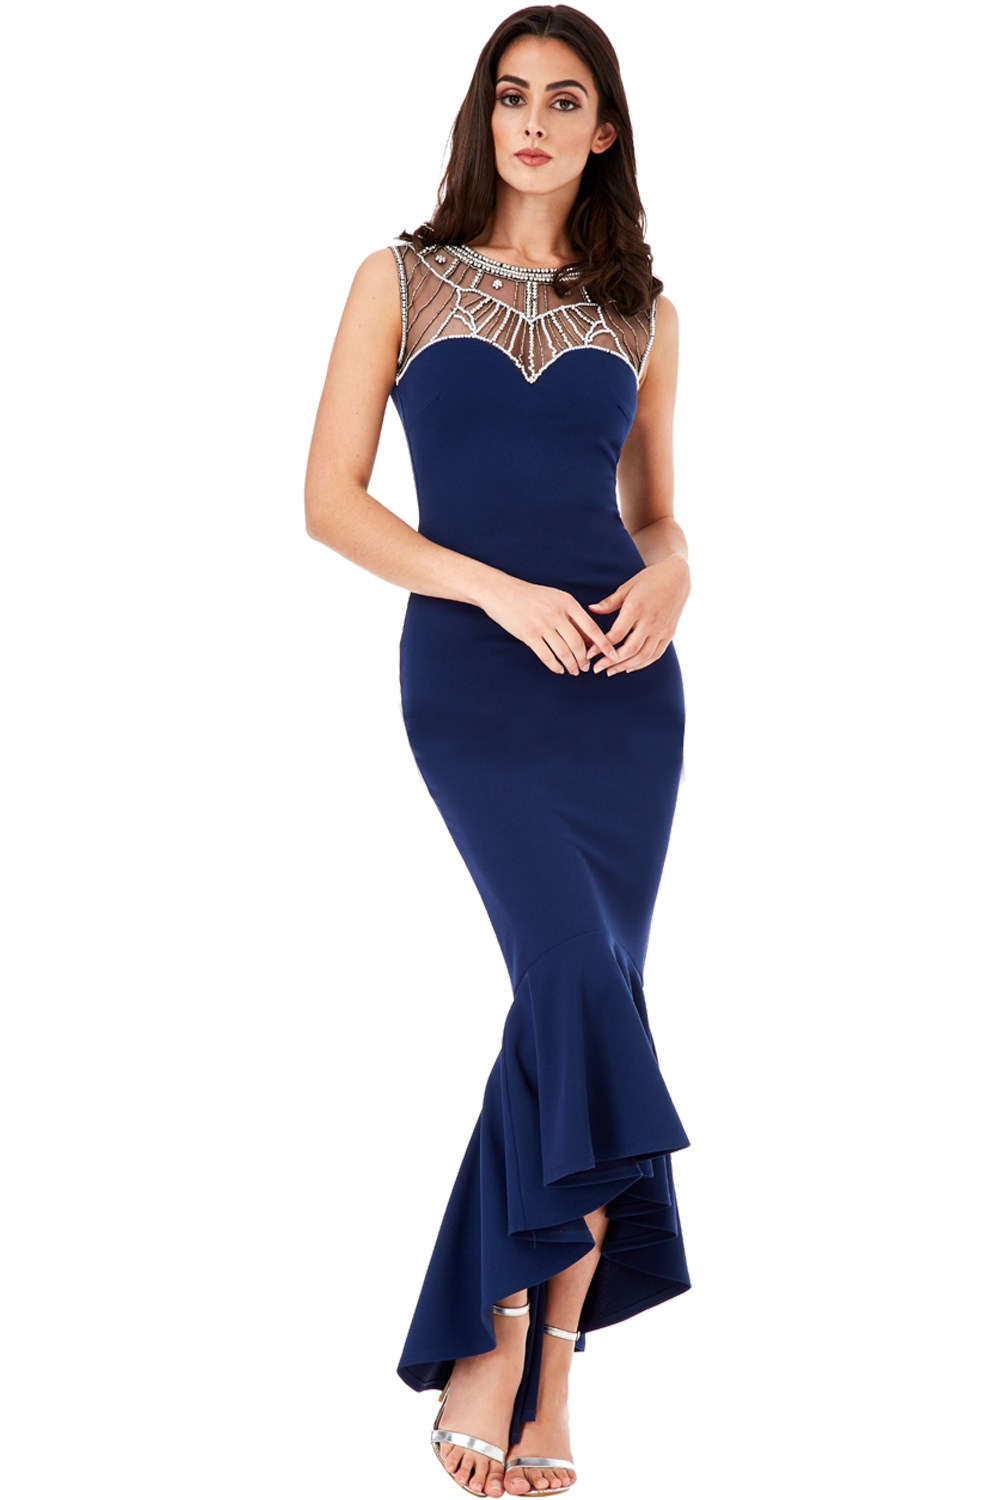 Lucille Navy Maxi 1920s Fishtail Prom Dress